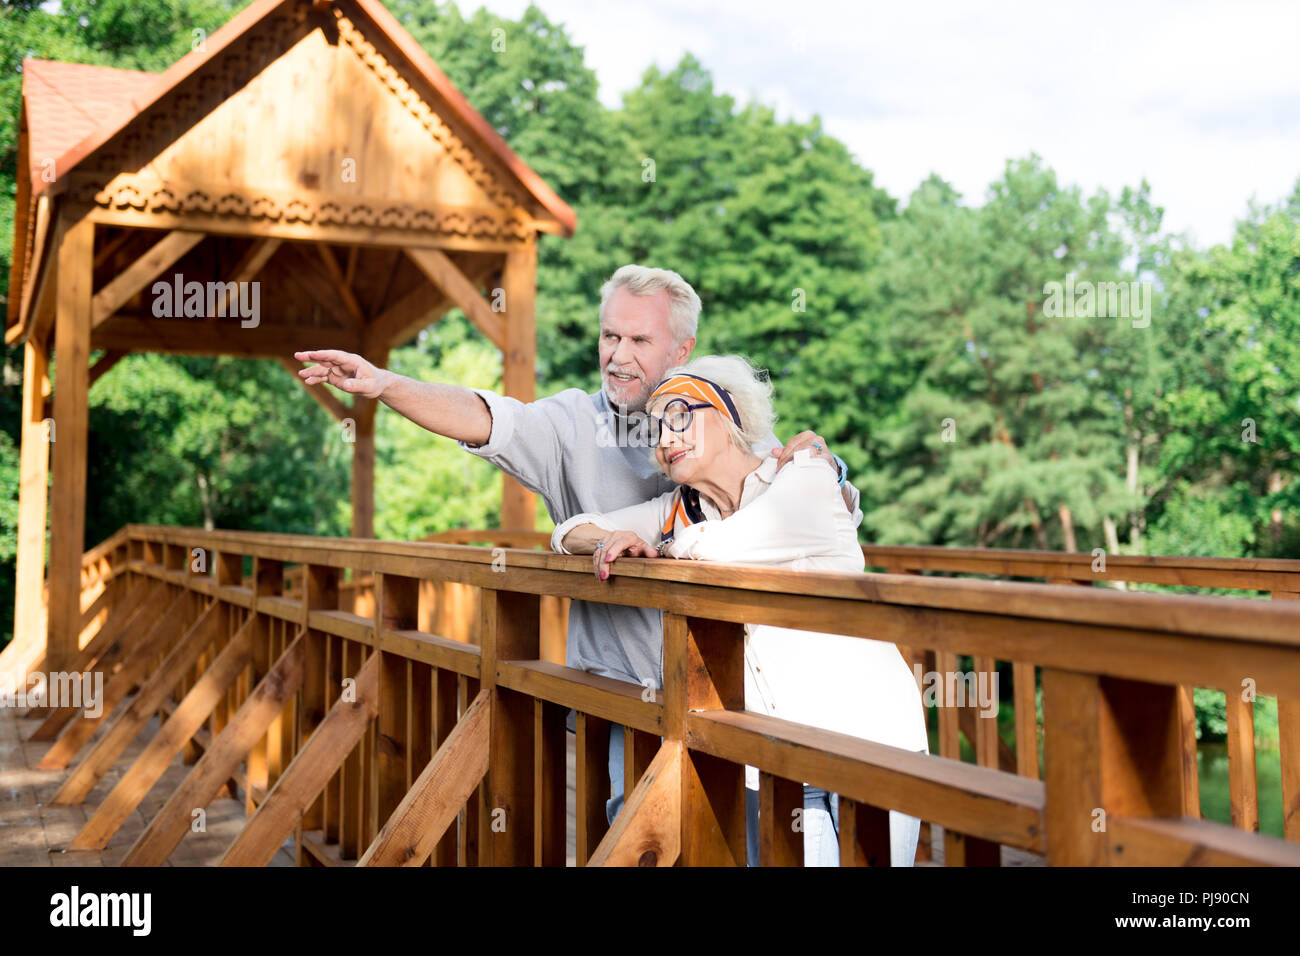 Handsome elderly man showing his appealing wife nice spot in the park - Stock Image